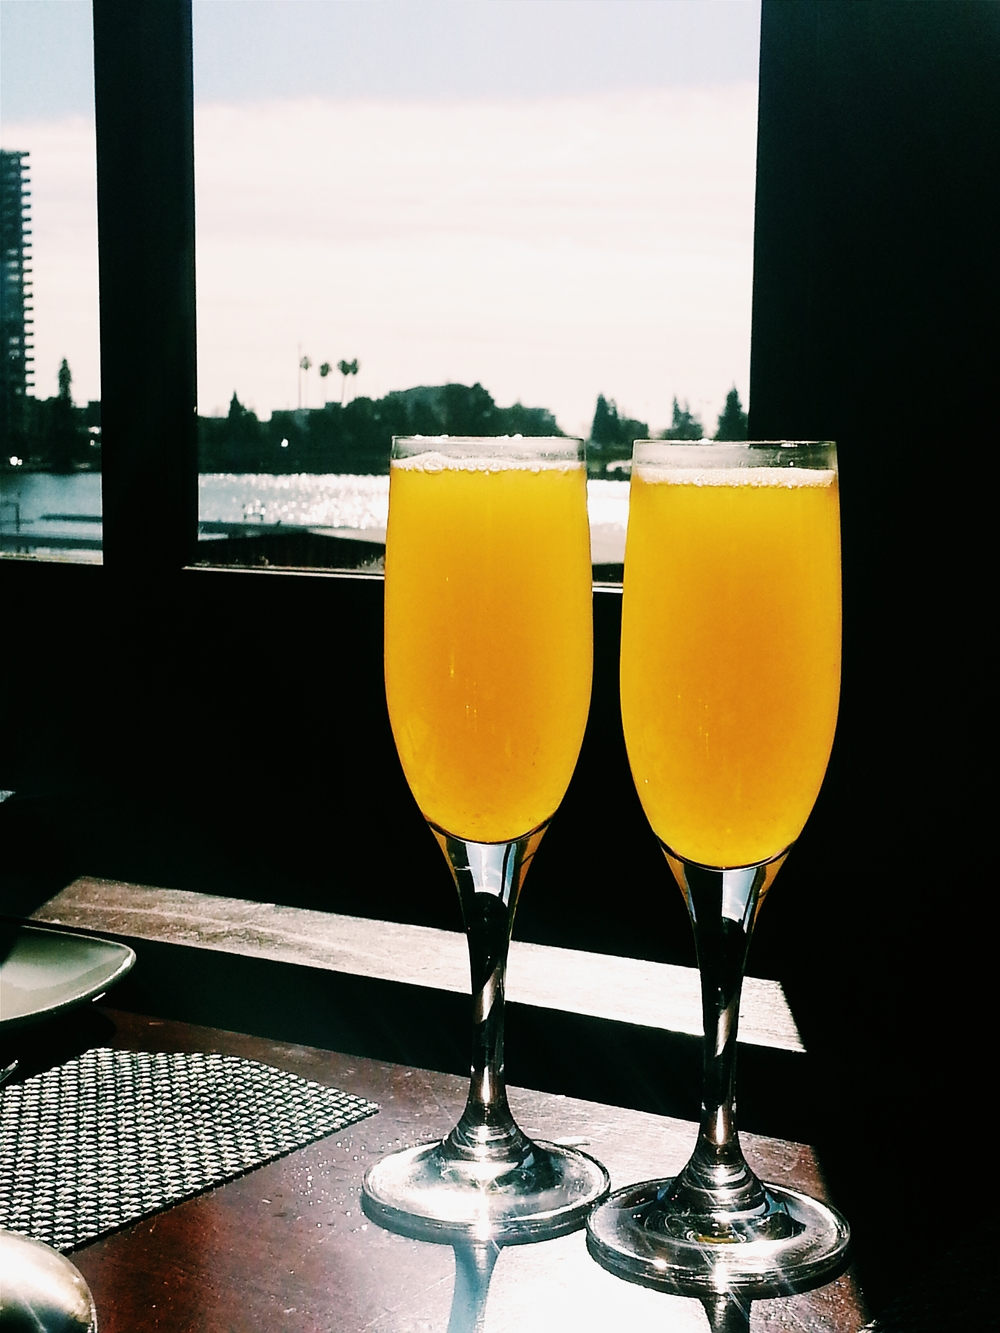 Money and Mimosas™, my weekly bookkeeping date, is now a daily podcast covering everything you need to know about accounting! Sign up for my newsletter (in the Tiffany blue box above) to be the first to hear about its official launch on iTunes and Stitcher.